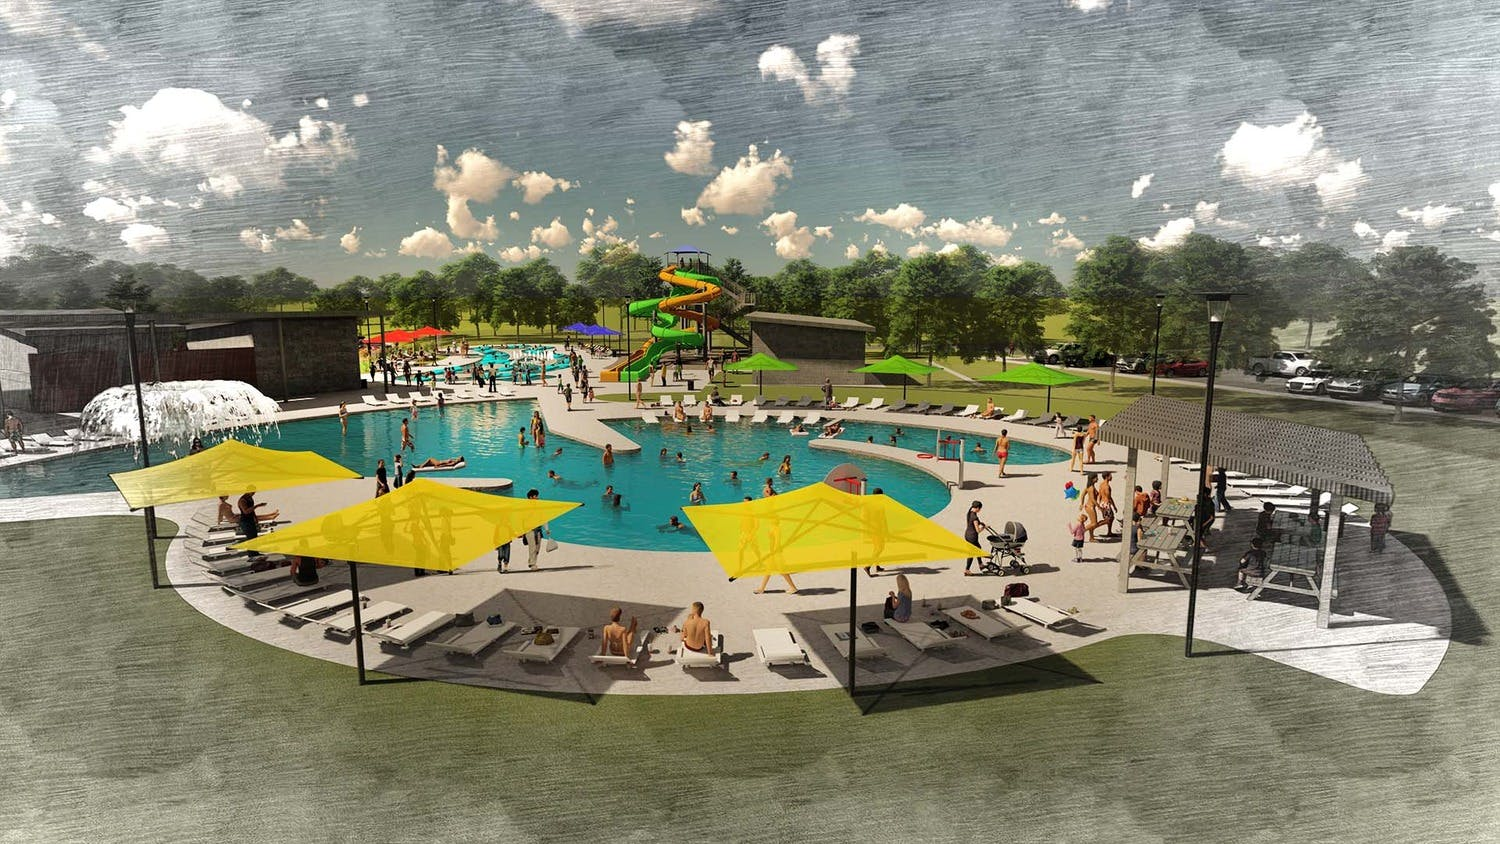 City conducts Thompson Park Pool groundbreaking ceremony